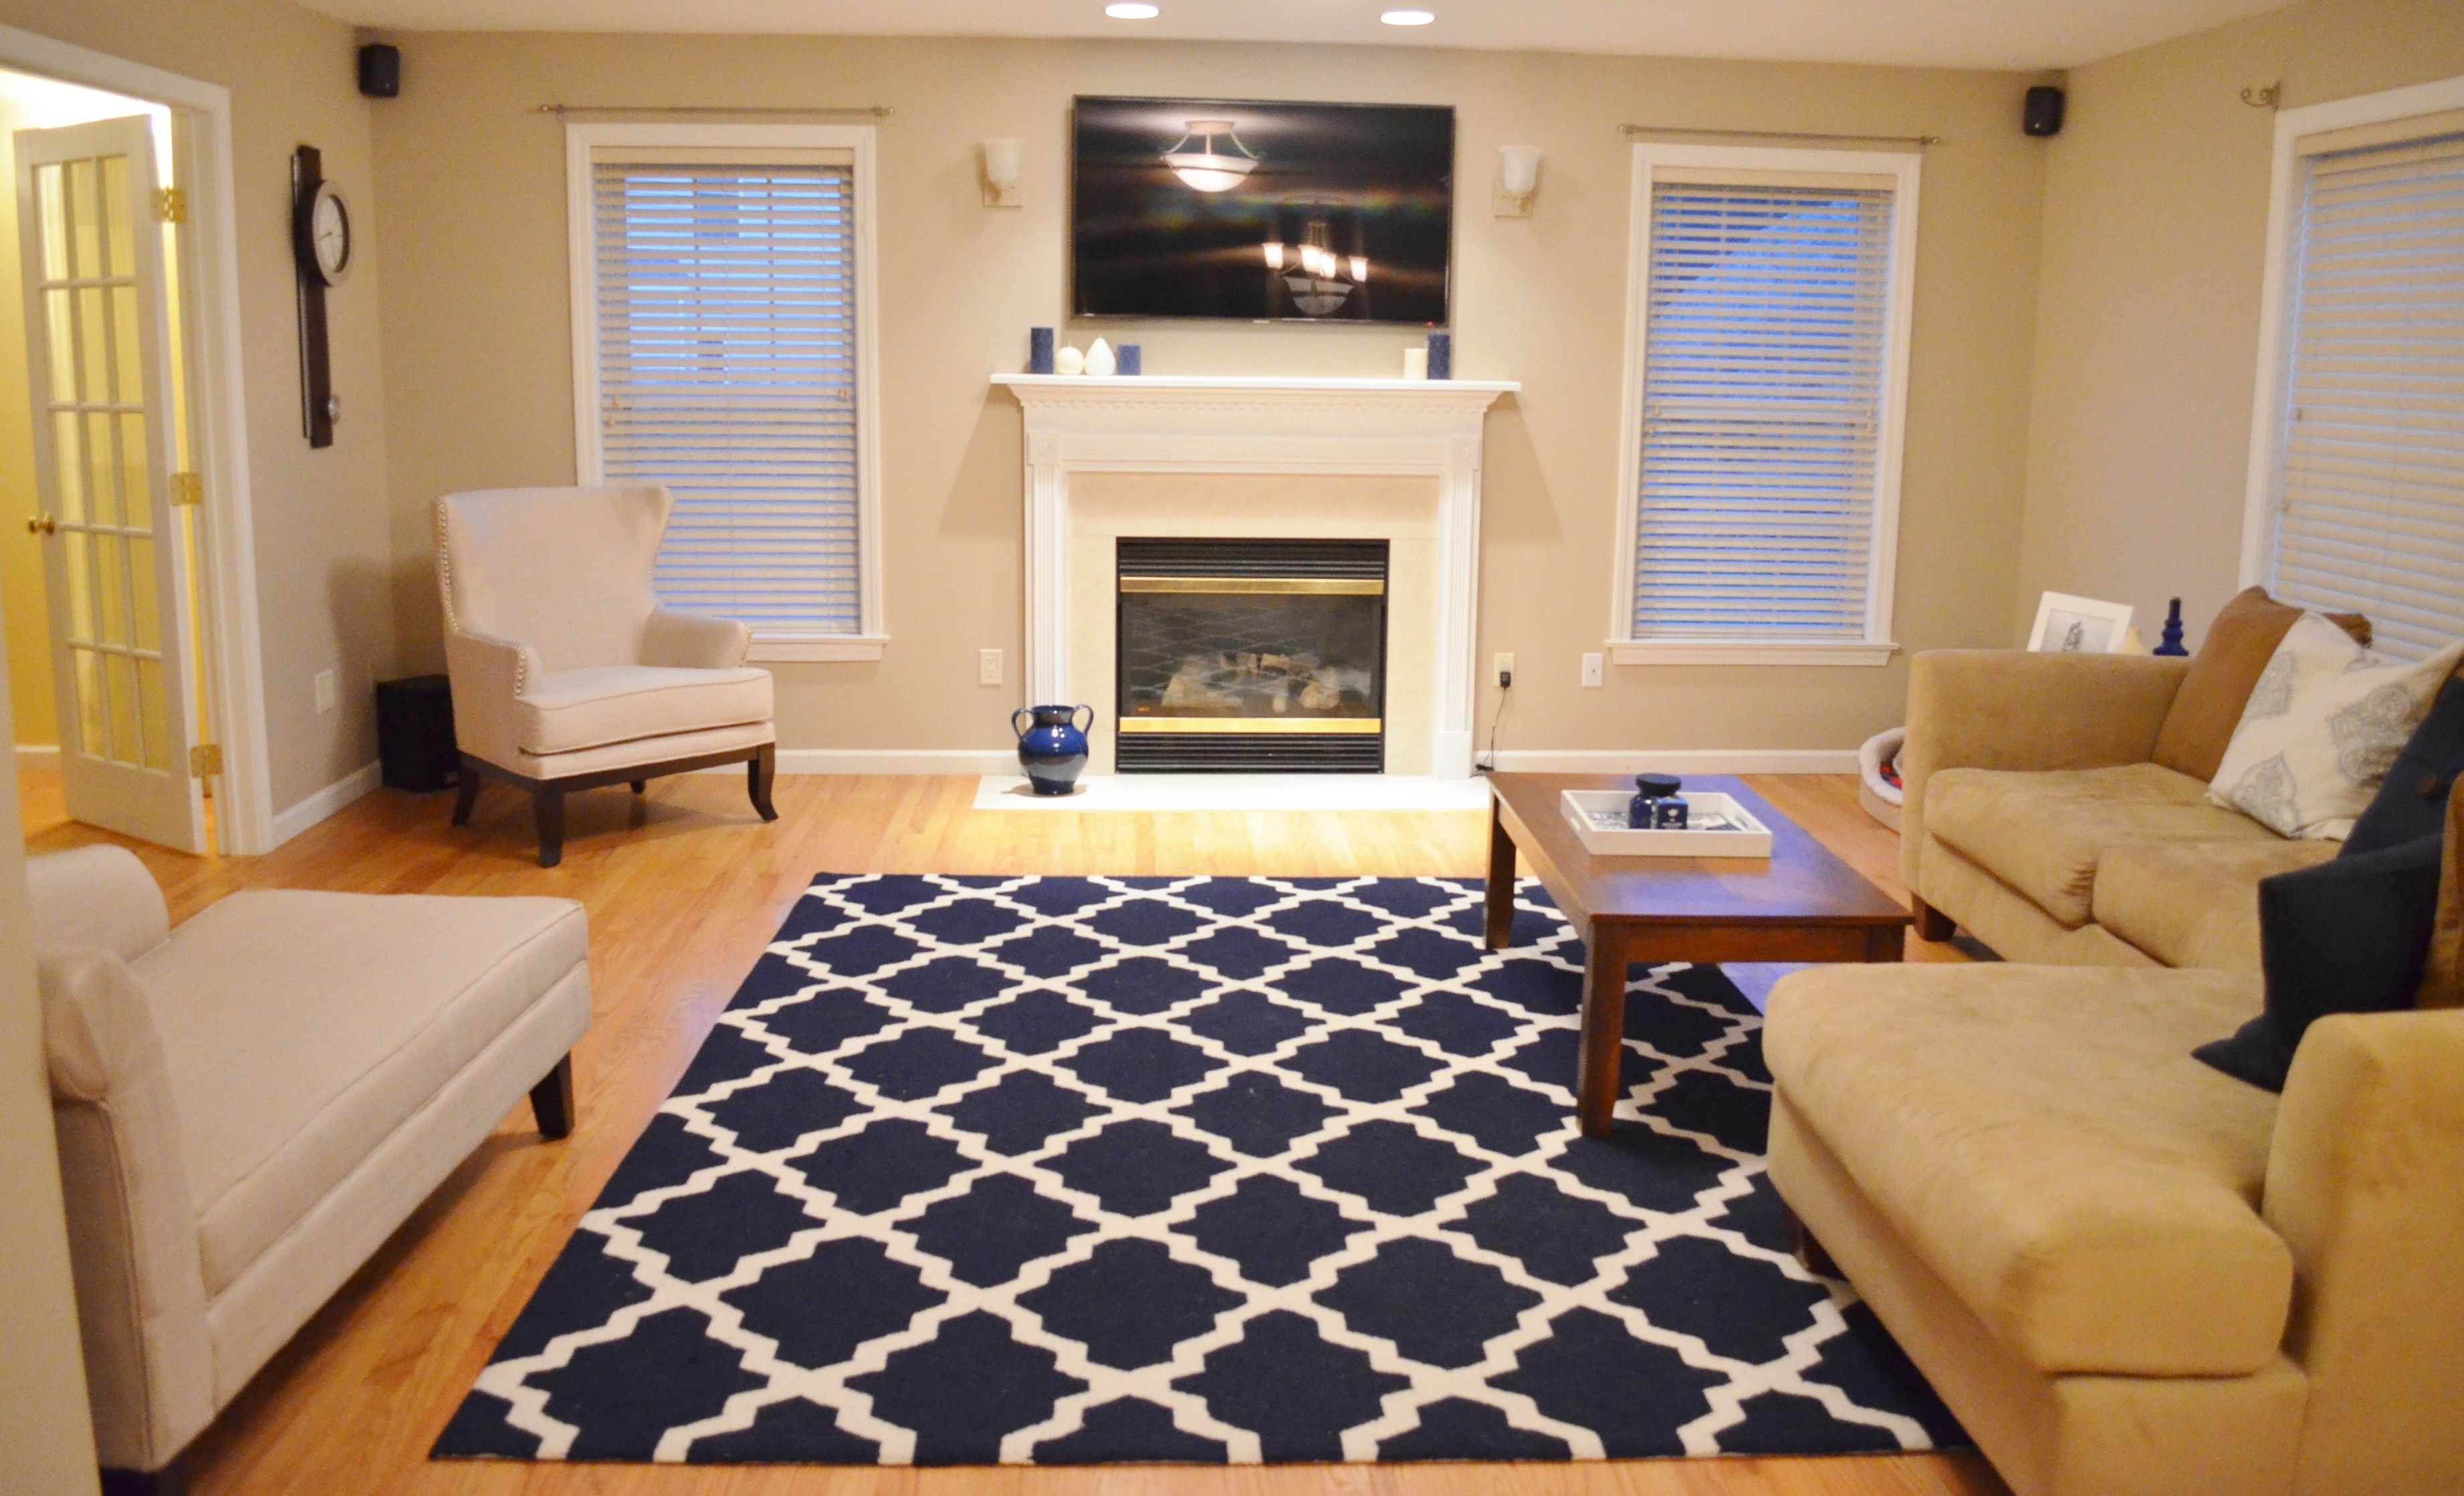 Featuring rugs usa navy blue moroccan trellis area rug for Navy blue carpet living room